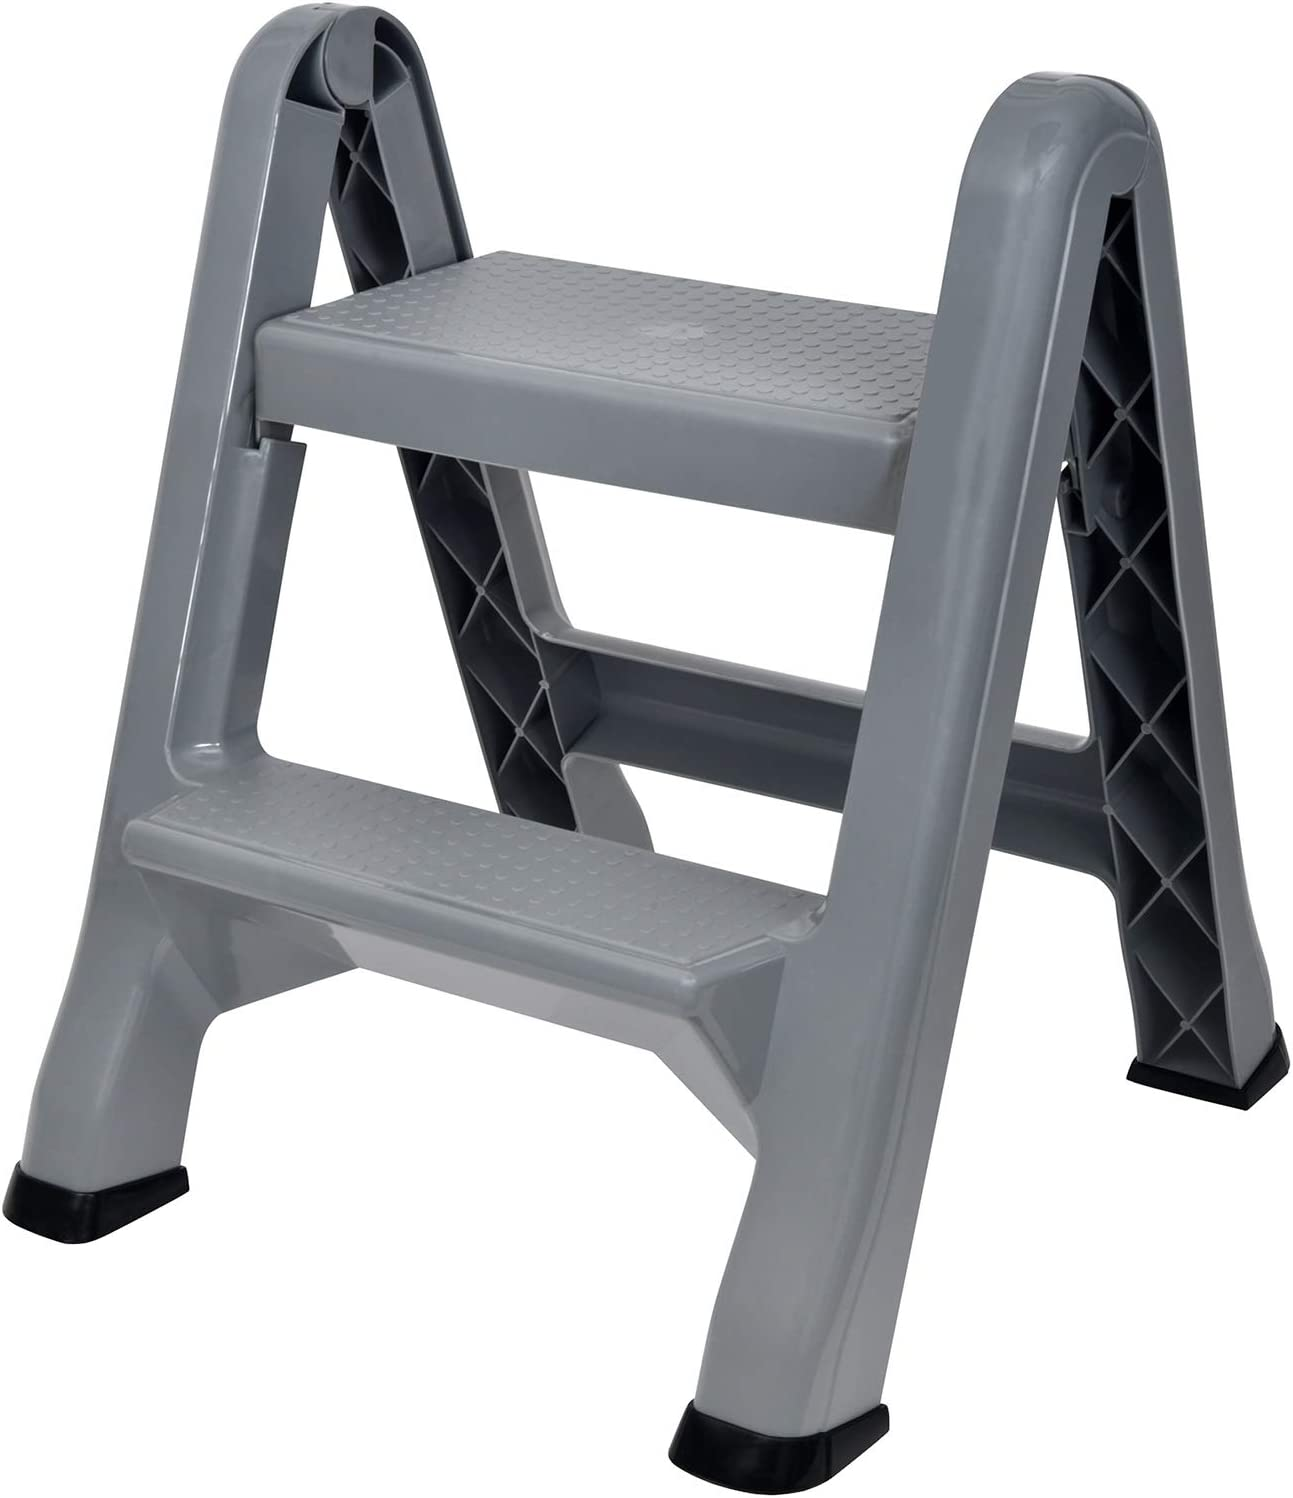 Spigo 2-Tier Step Stool Ladder, Durable Construction, Compact and Lightweight, Perfect Your Home or Workplace, Rust Resistant, One-Handed Operation, 22.5×20.5×19 Inches Gray